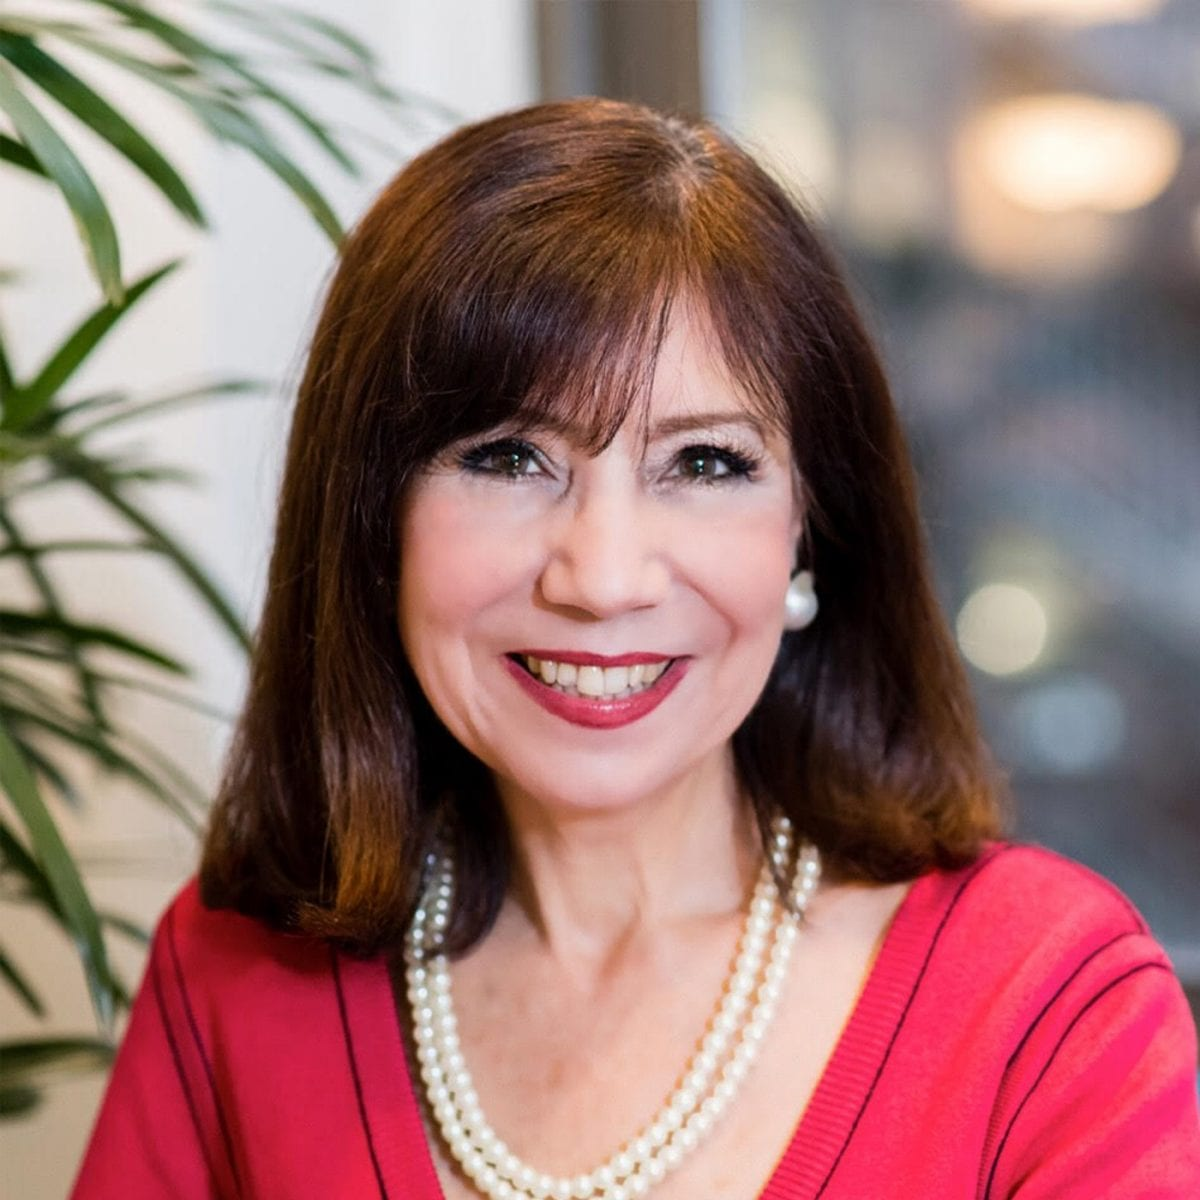 CFD 523 – Diane DiResta On Effective Communication And Overcoming The Fear of Public Speaking